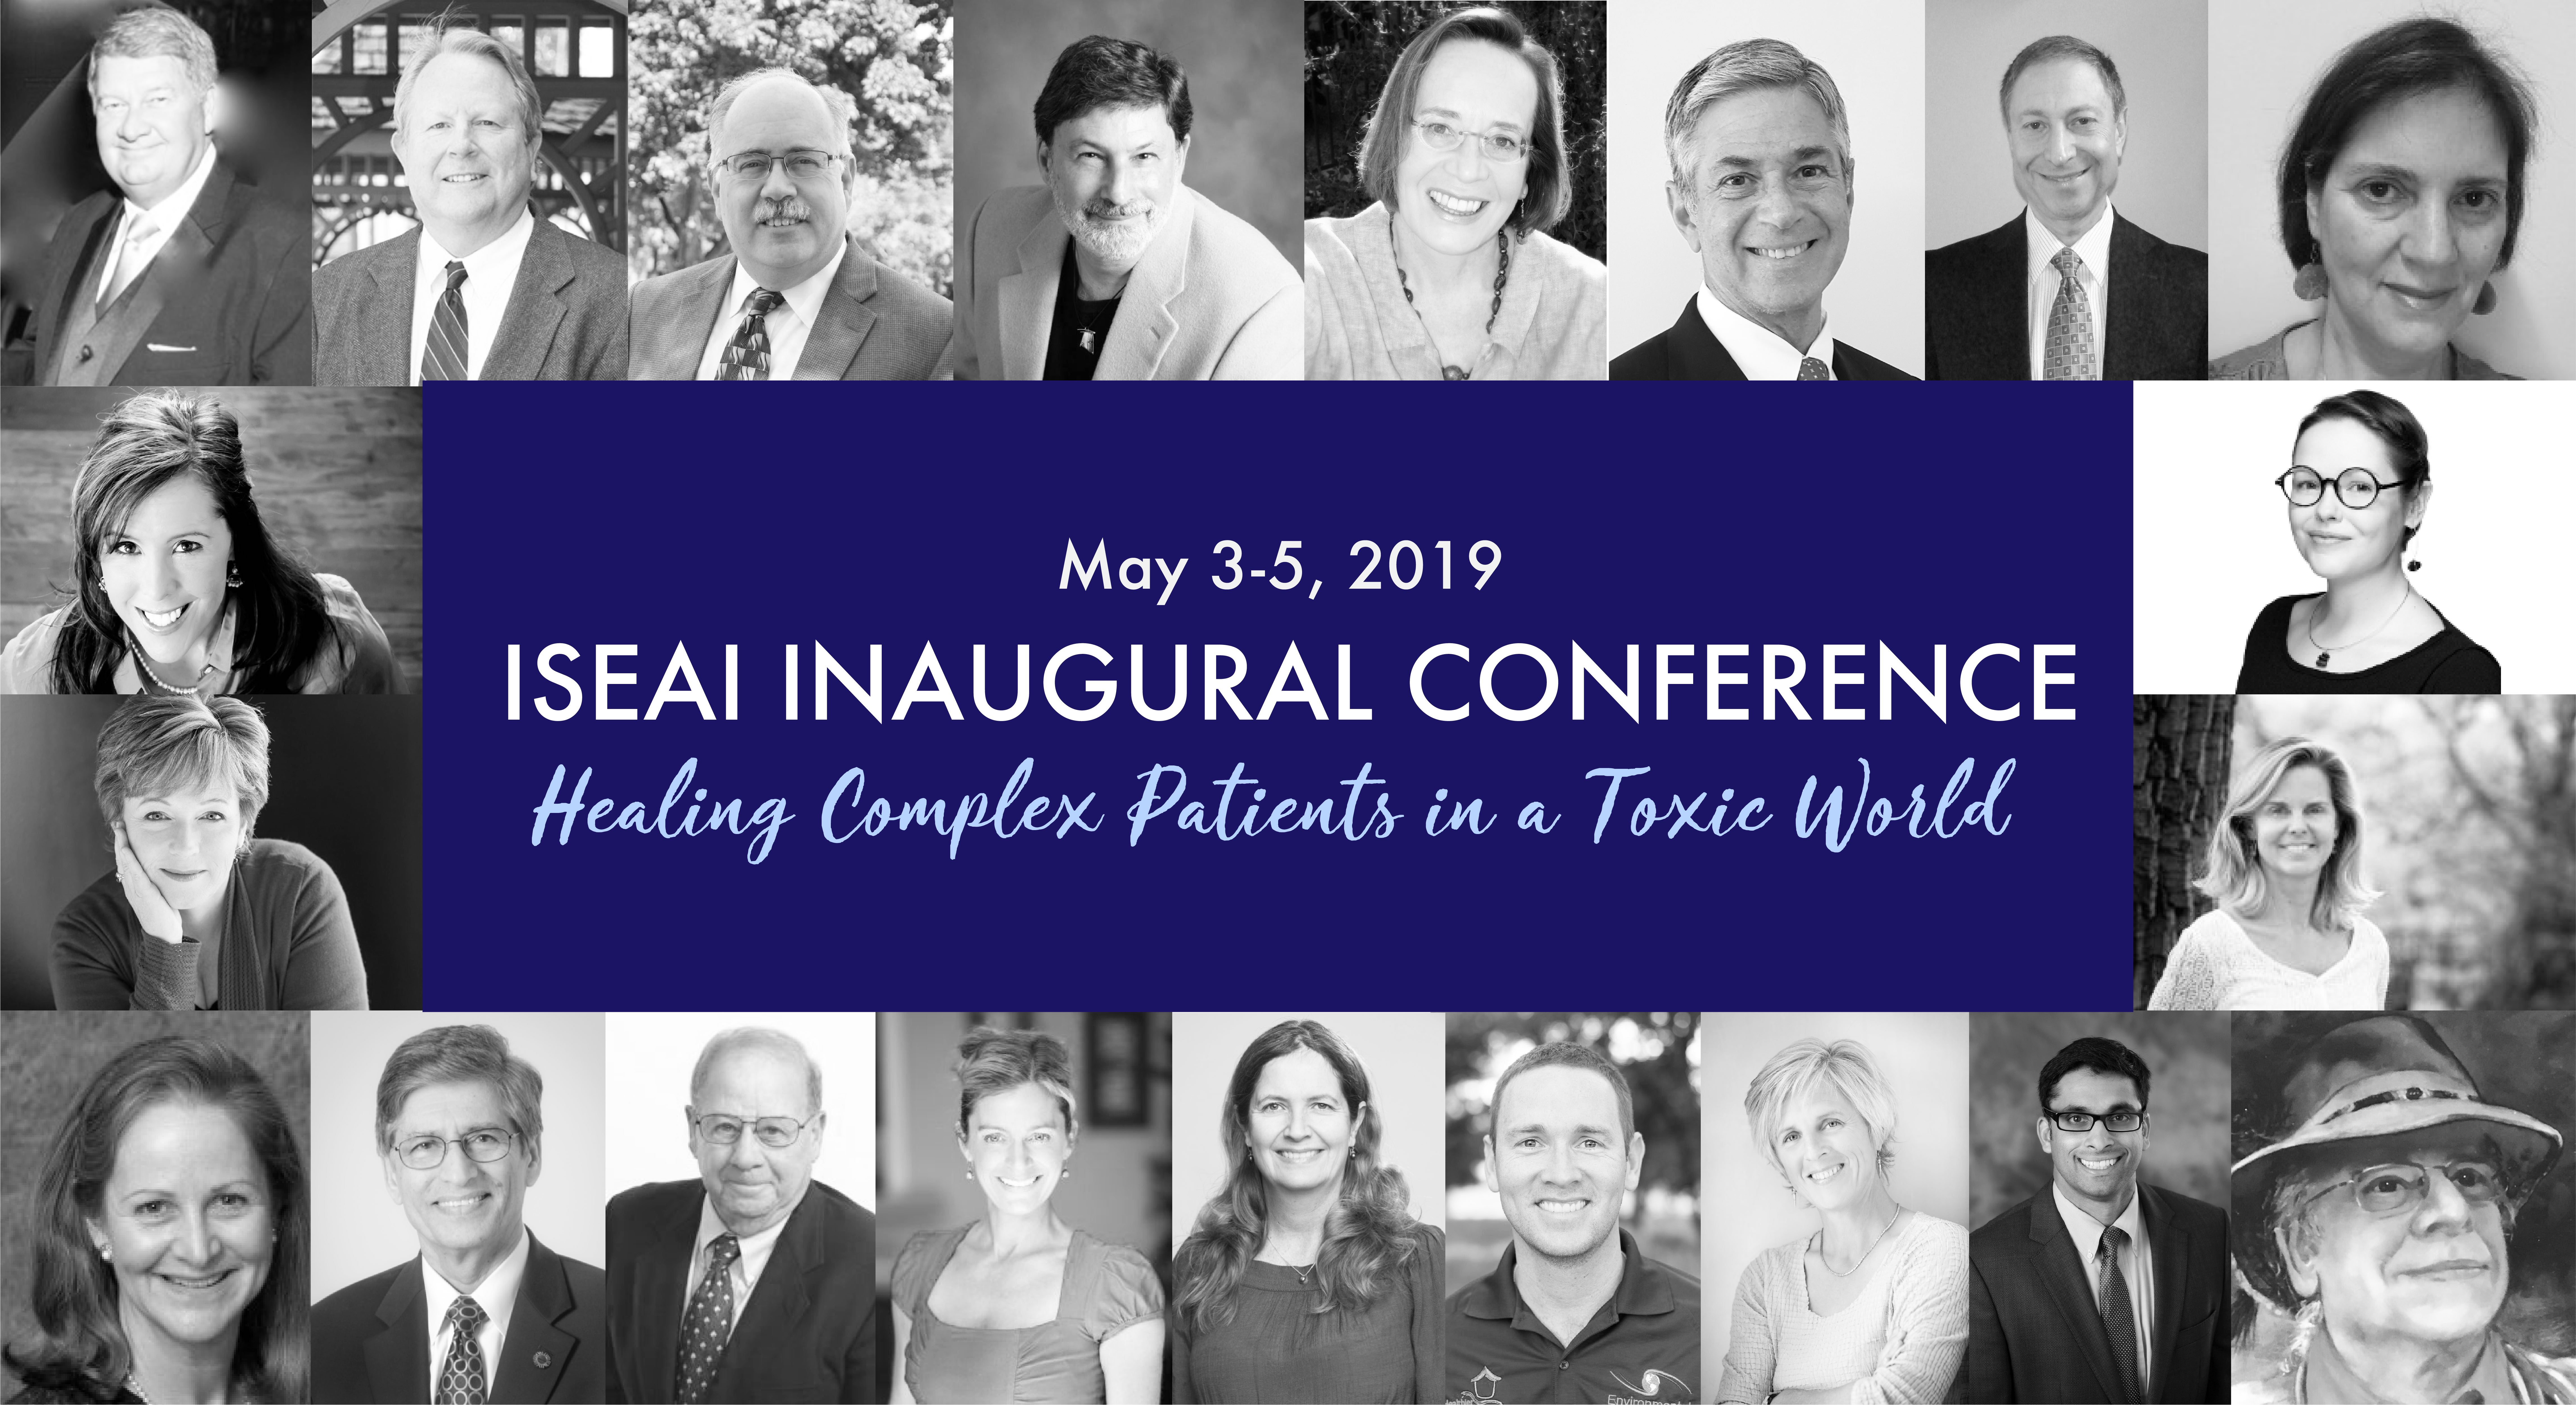 ISEAI 2019 Conference Speakers